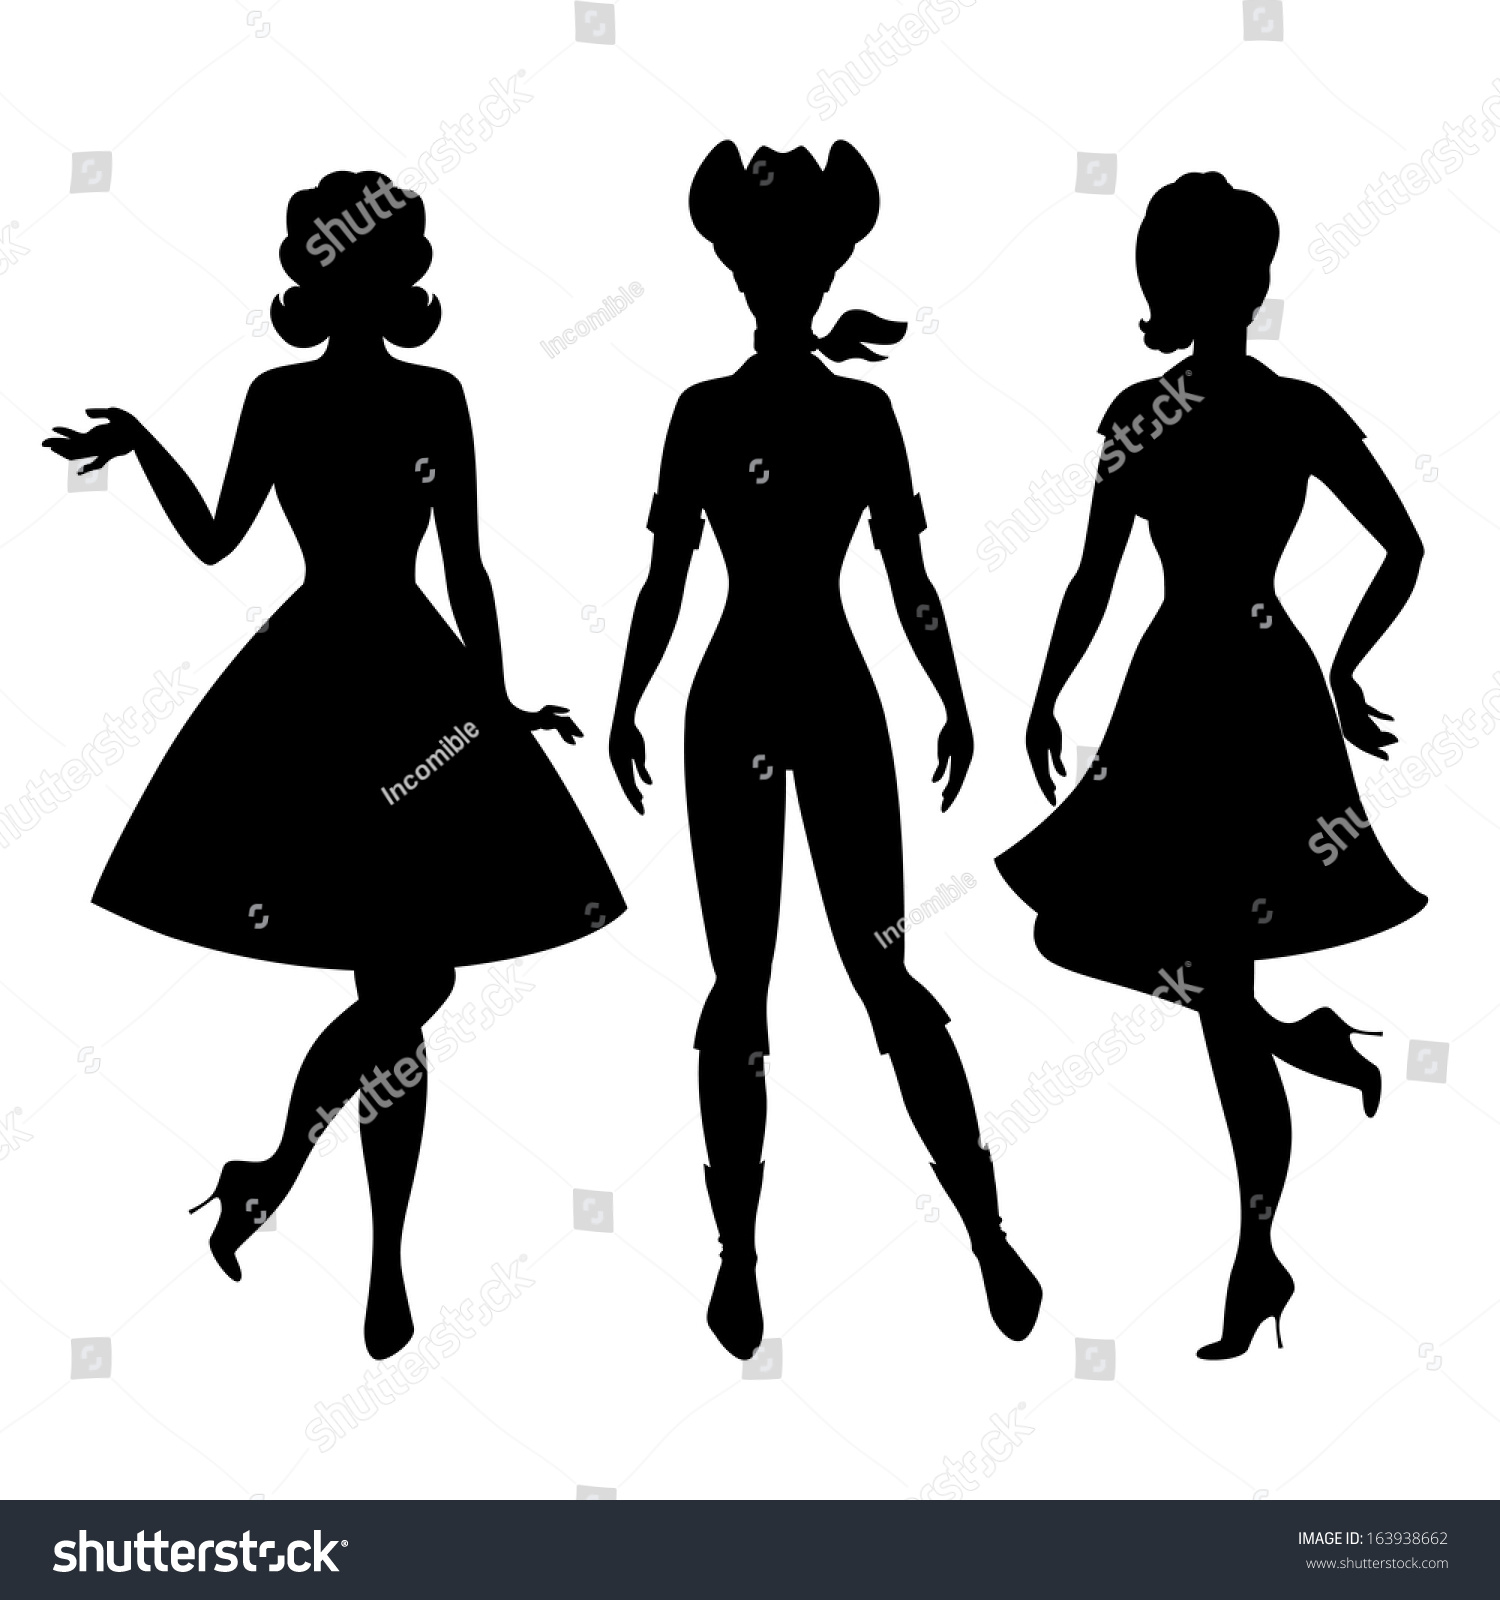 50s Pin-up Girl Stock Images, Royalty-Free Images ...